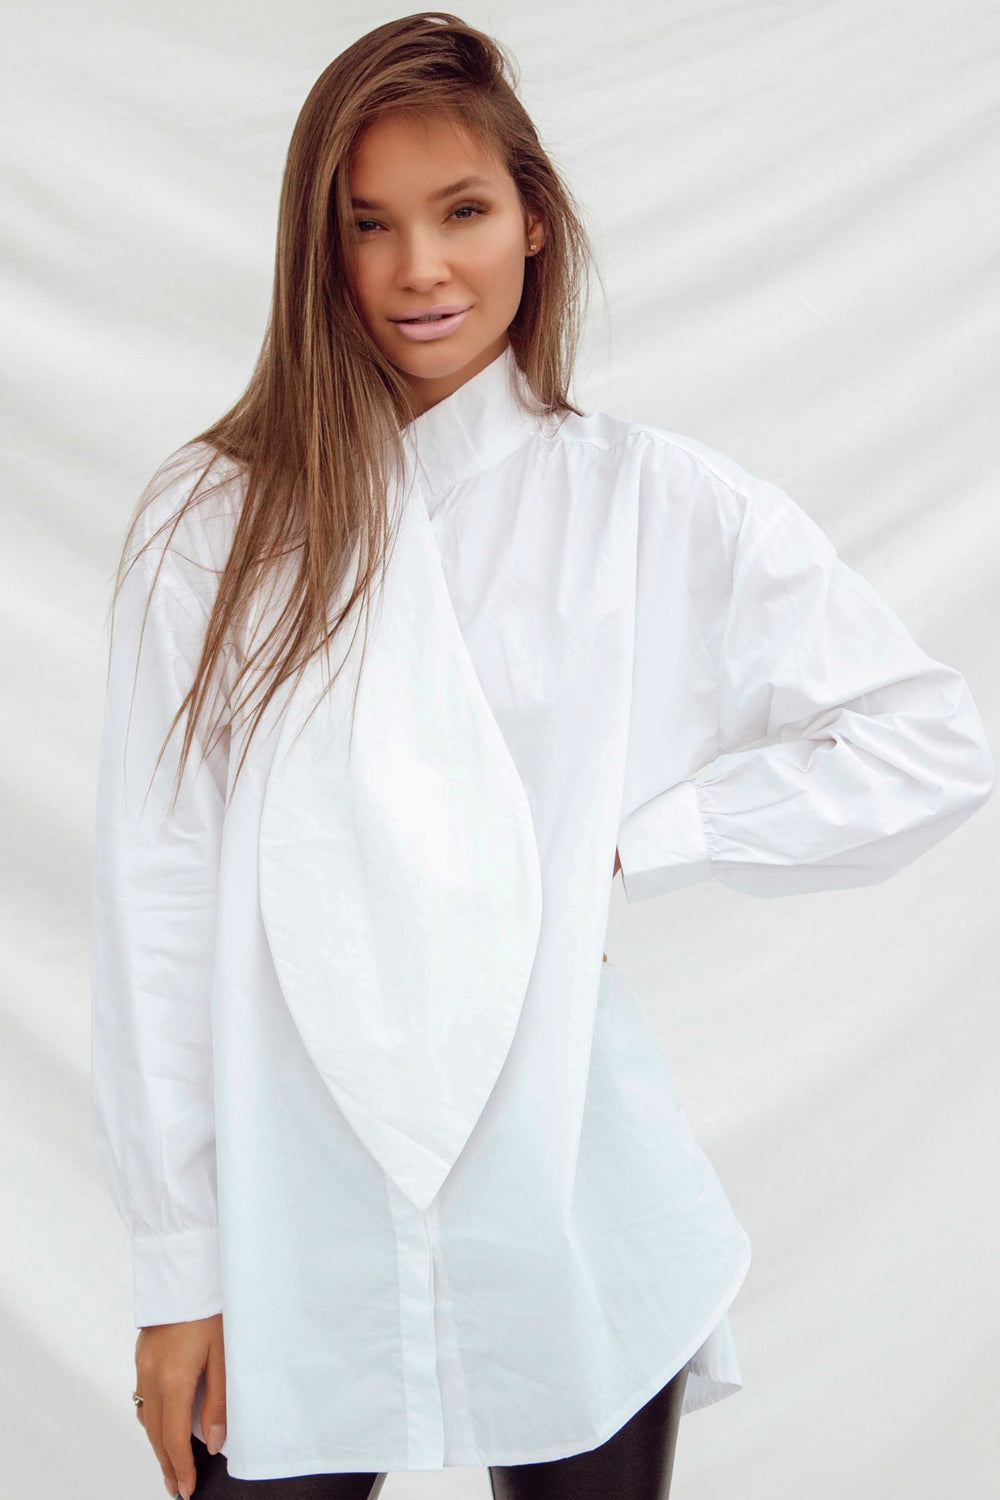 JASPER SHIRT IN WHITE - Chic Le Frique